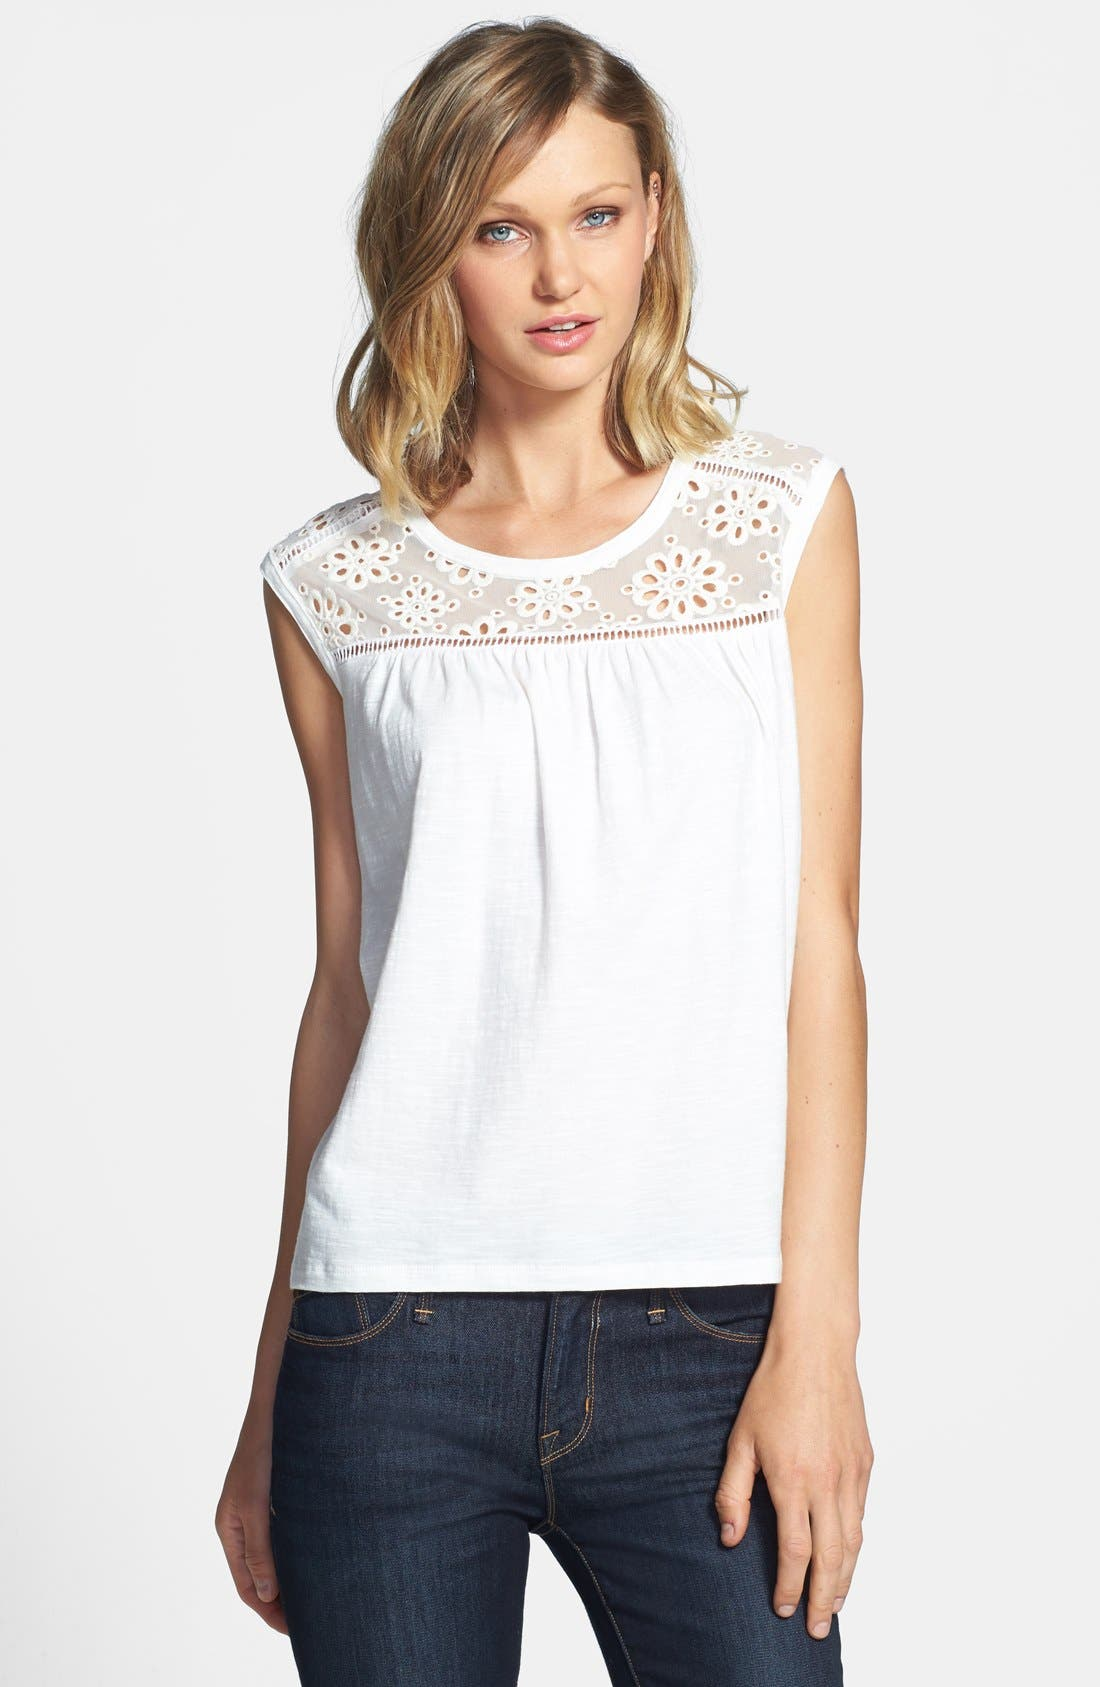 Alternate Image 1 Selected - Two by Vince Camuto Eyelet Mesh Top